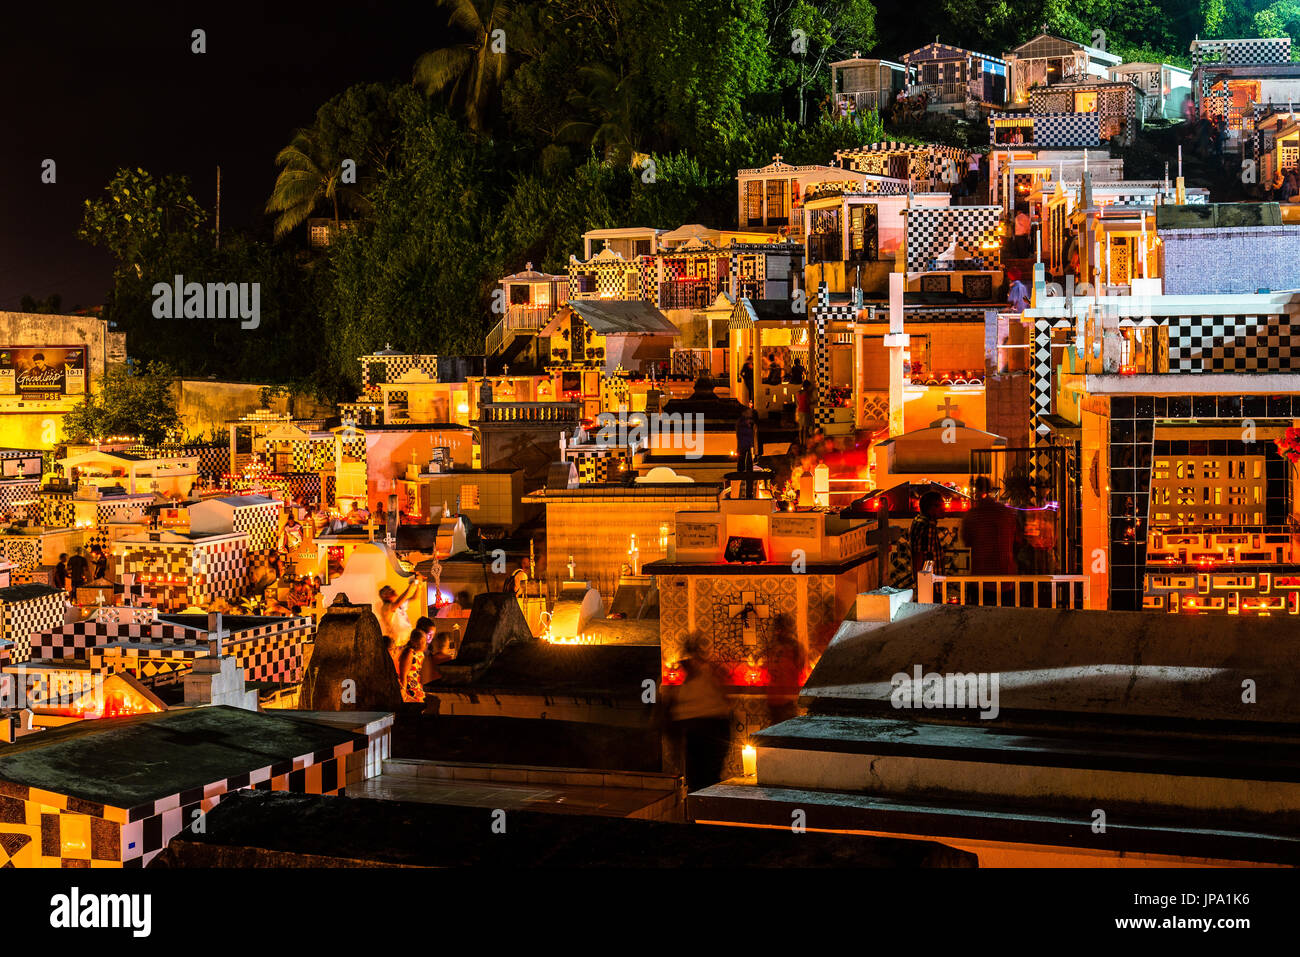 MORNE-A-L'EAU, GUADELOUPE - NOVEMBER 01, 2015: Cemetery in 'Morne-à-l'Eau', Guadeloupe. with lighted candles on All Saints' Day - Stock Image